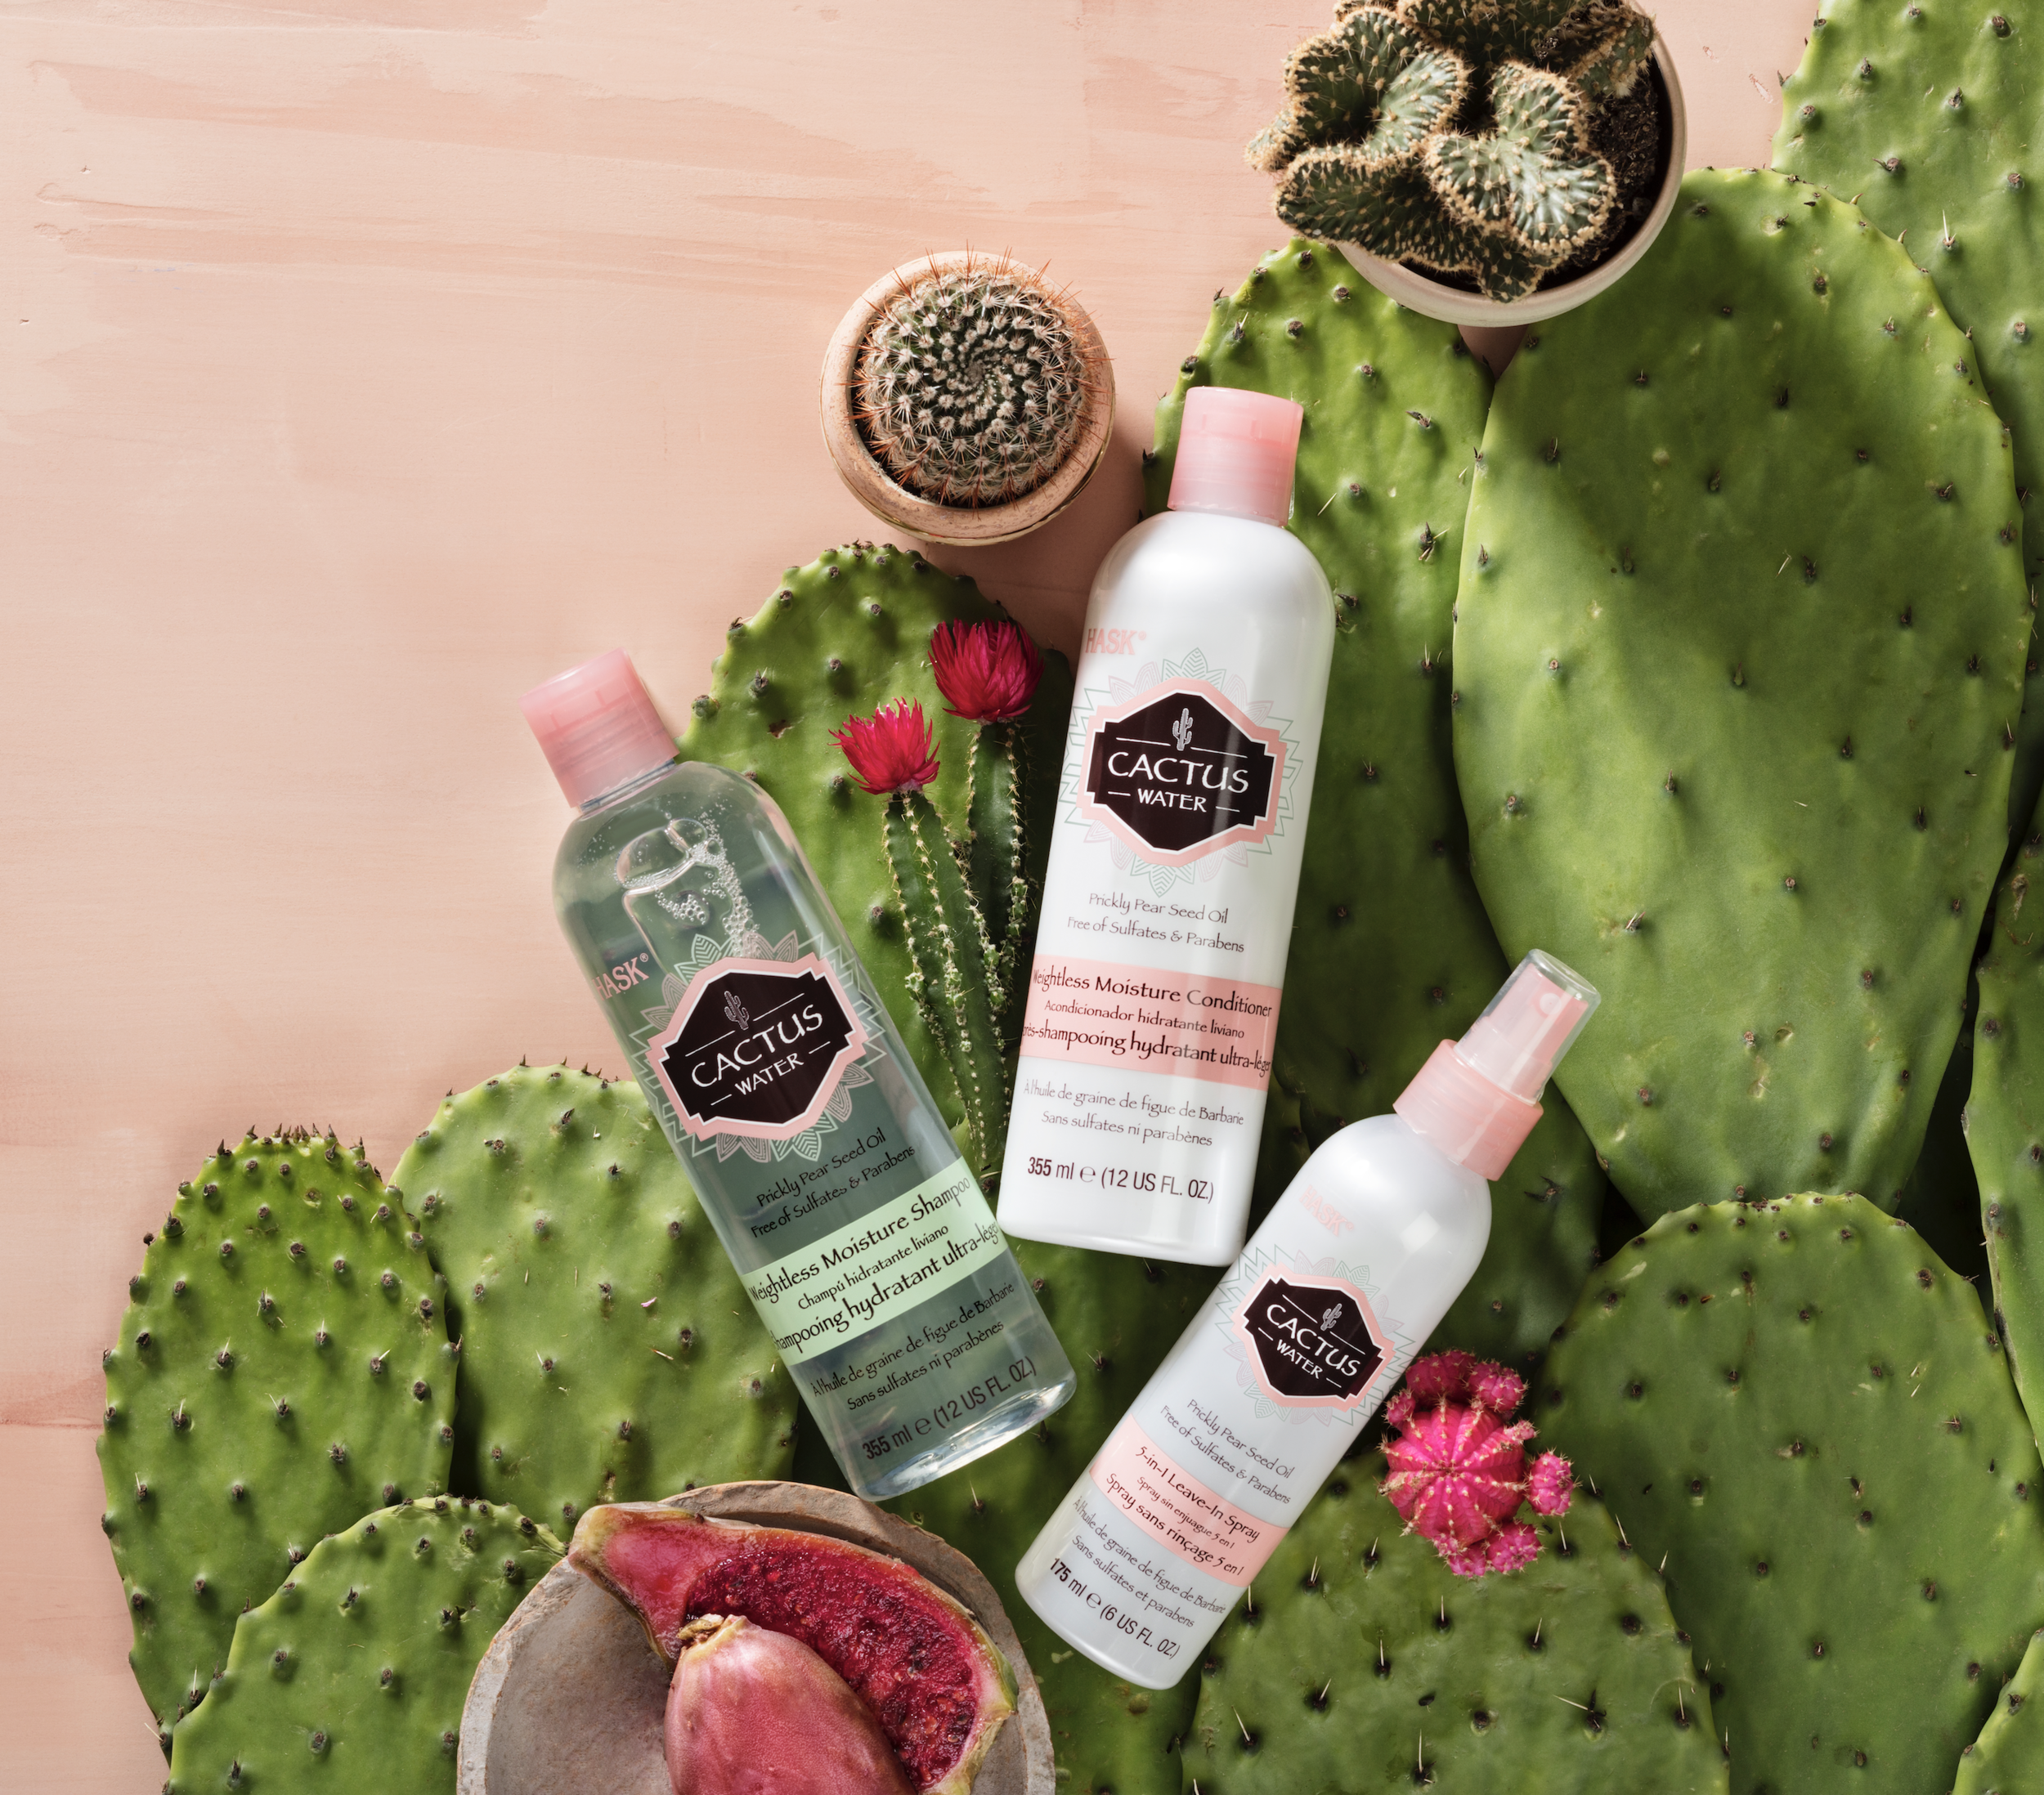 HASK Cactus water and Coconut Water collection